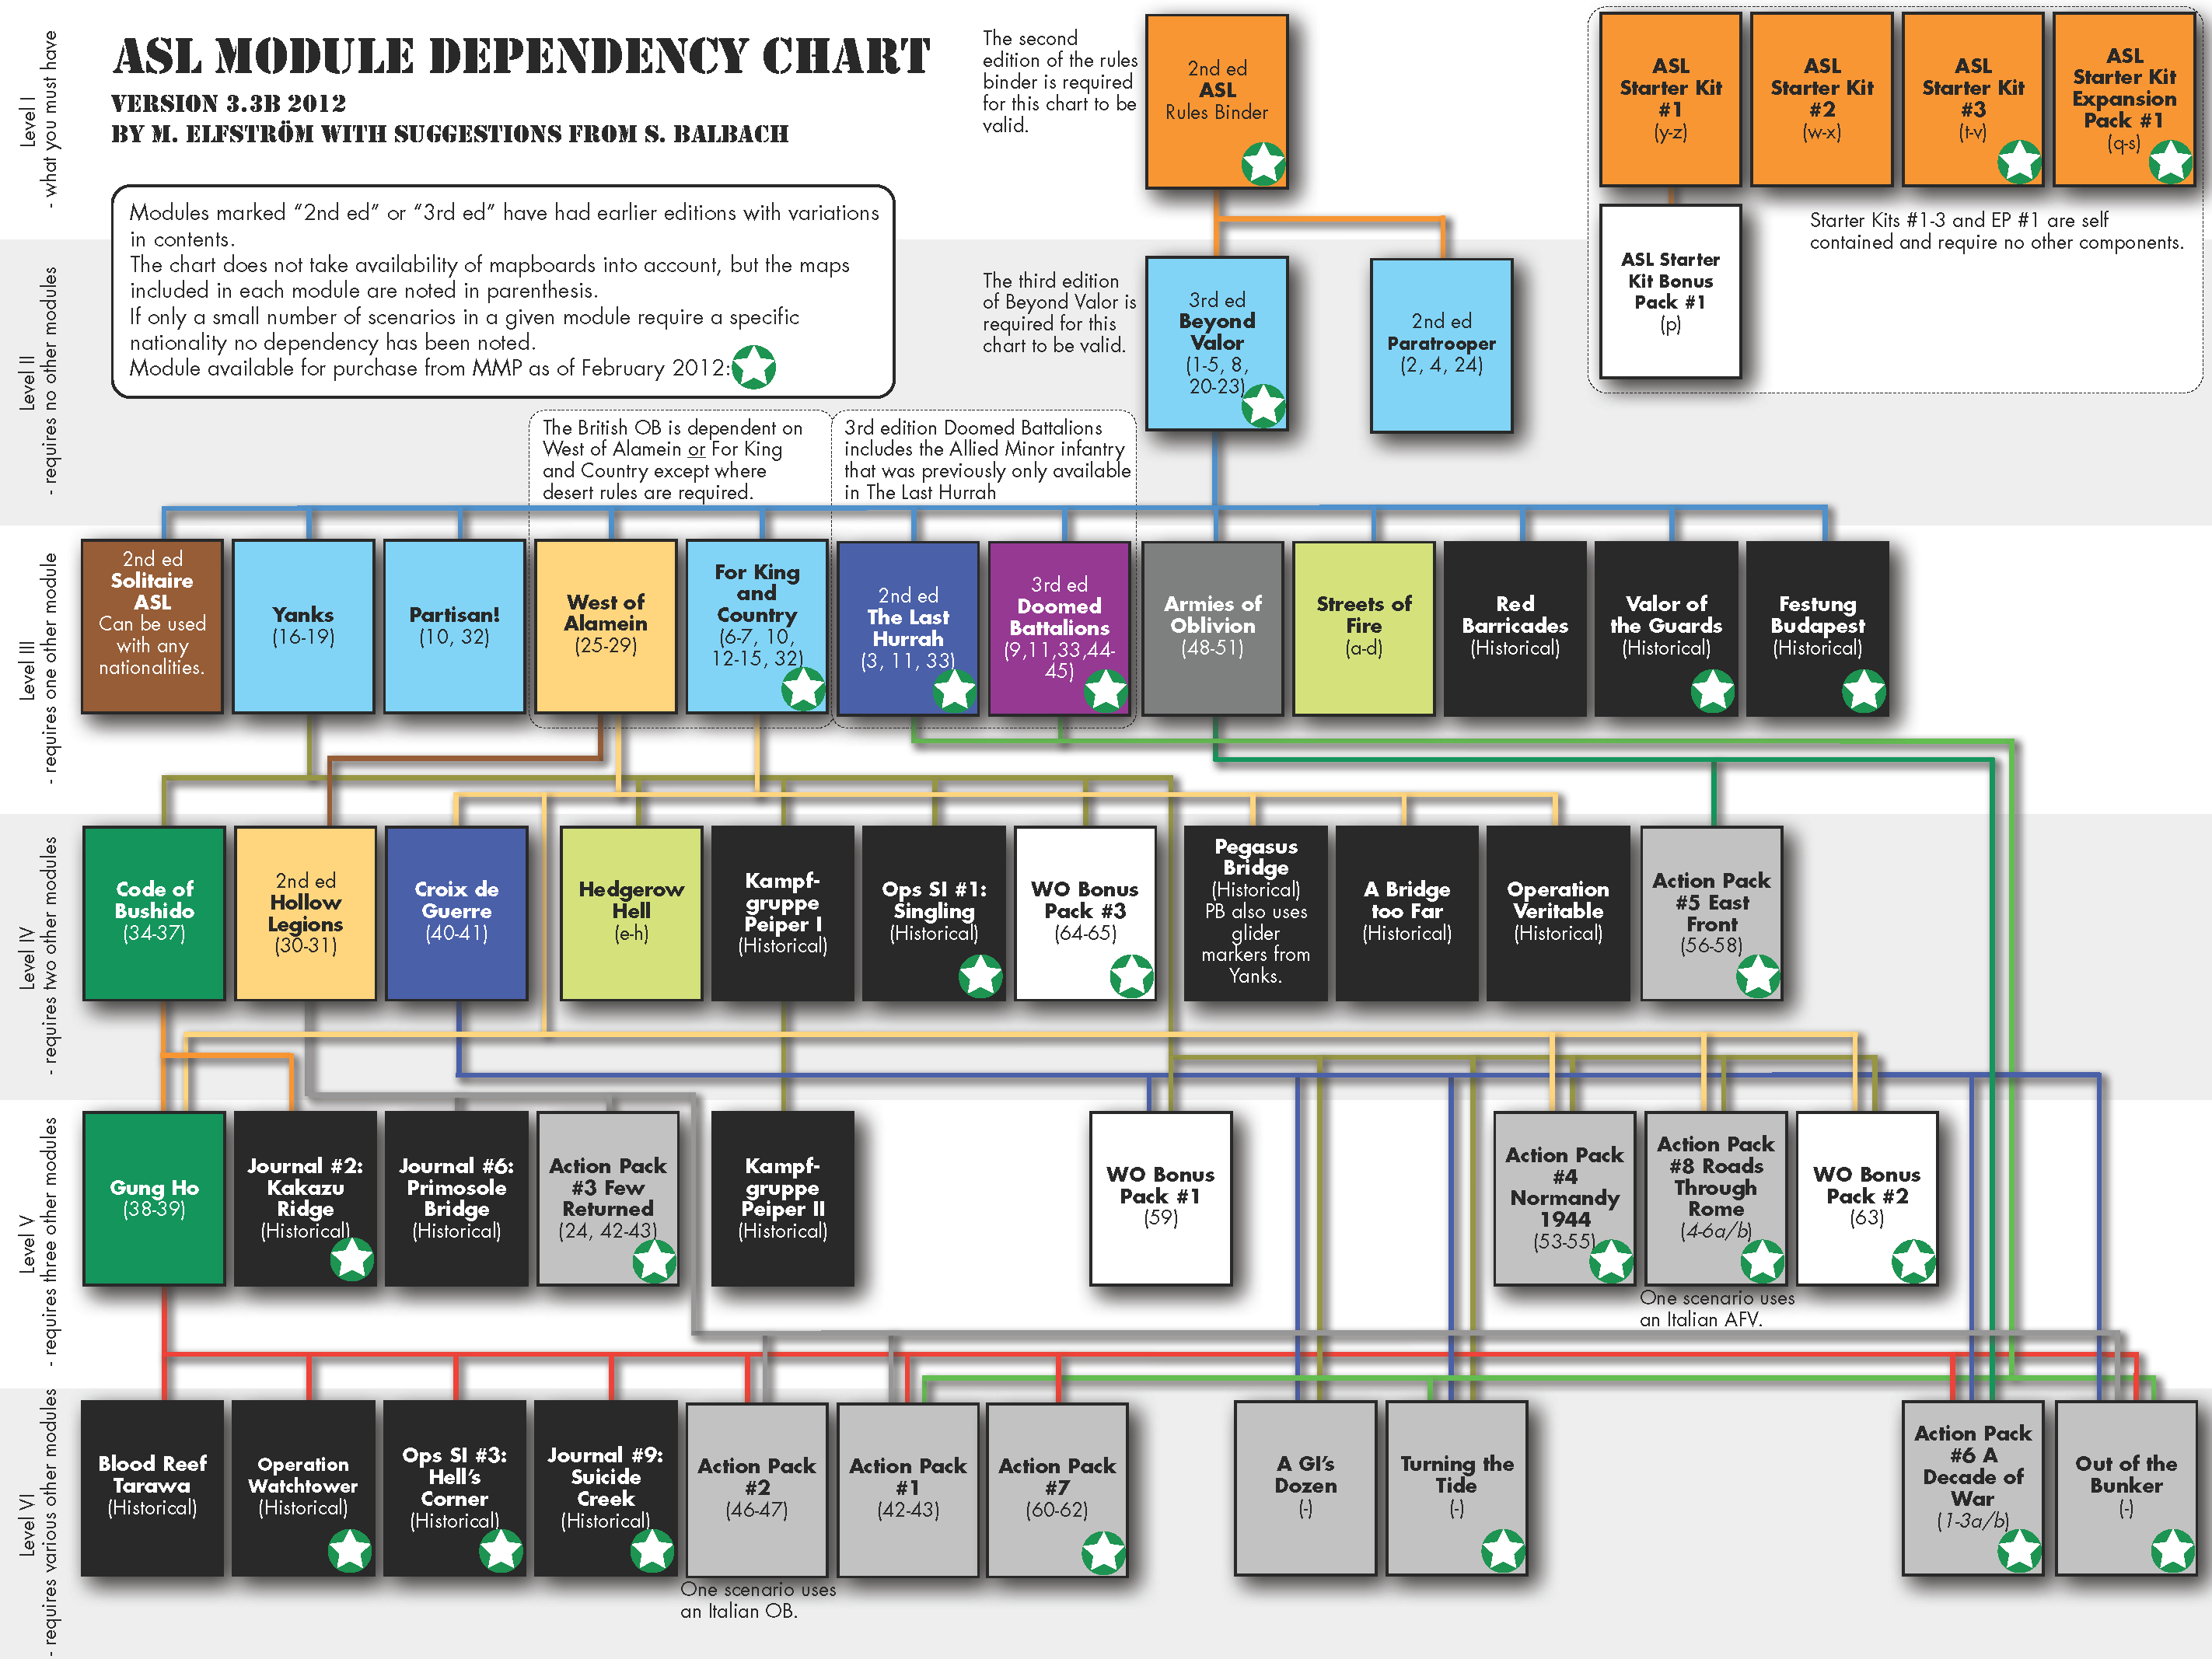 ASL Dependency Chart